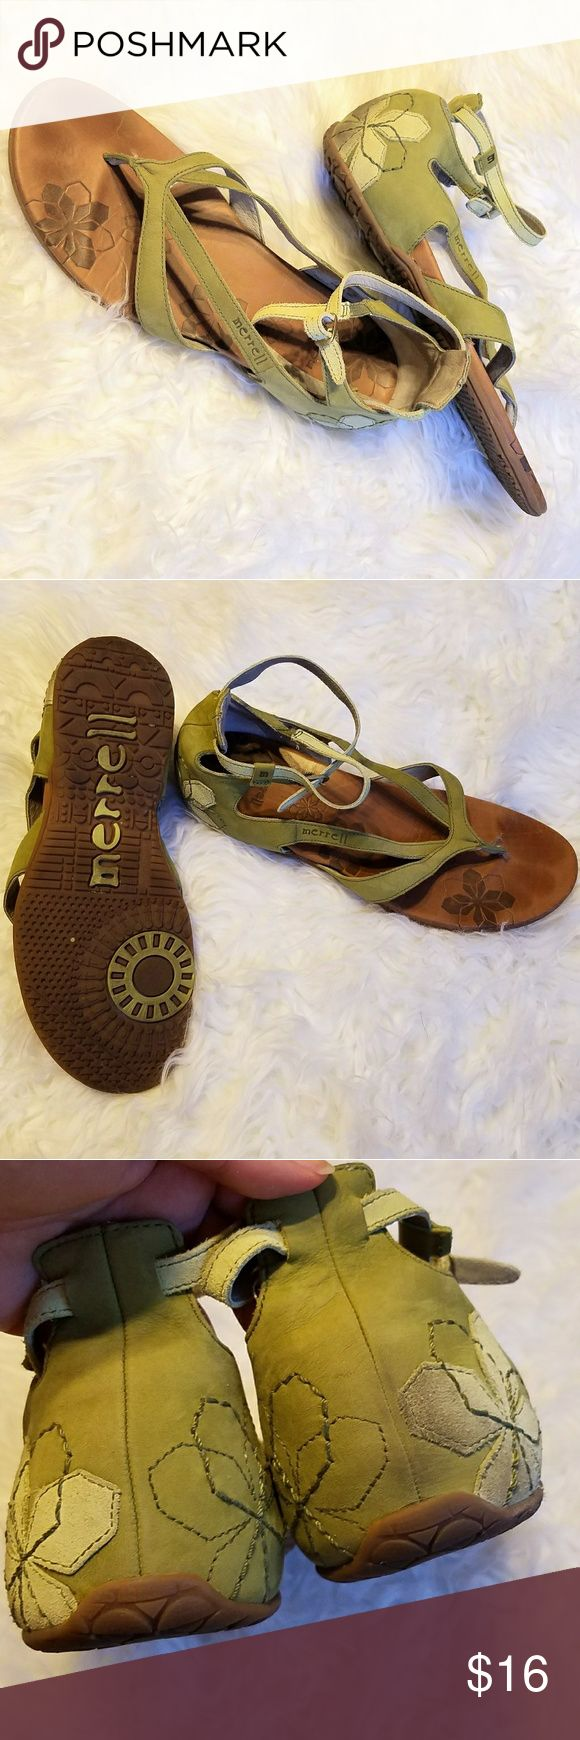 Merrill Sandals Light sage with tan flower on enclosed heel. Nice and soft, good support. GUC some discoloration on back of right heel. Merrell Shoes Sandals